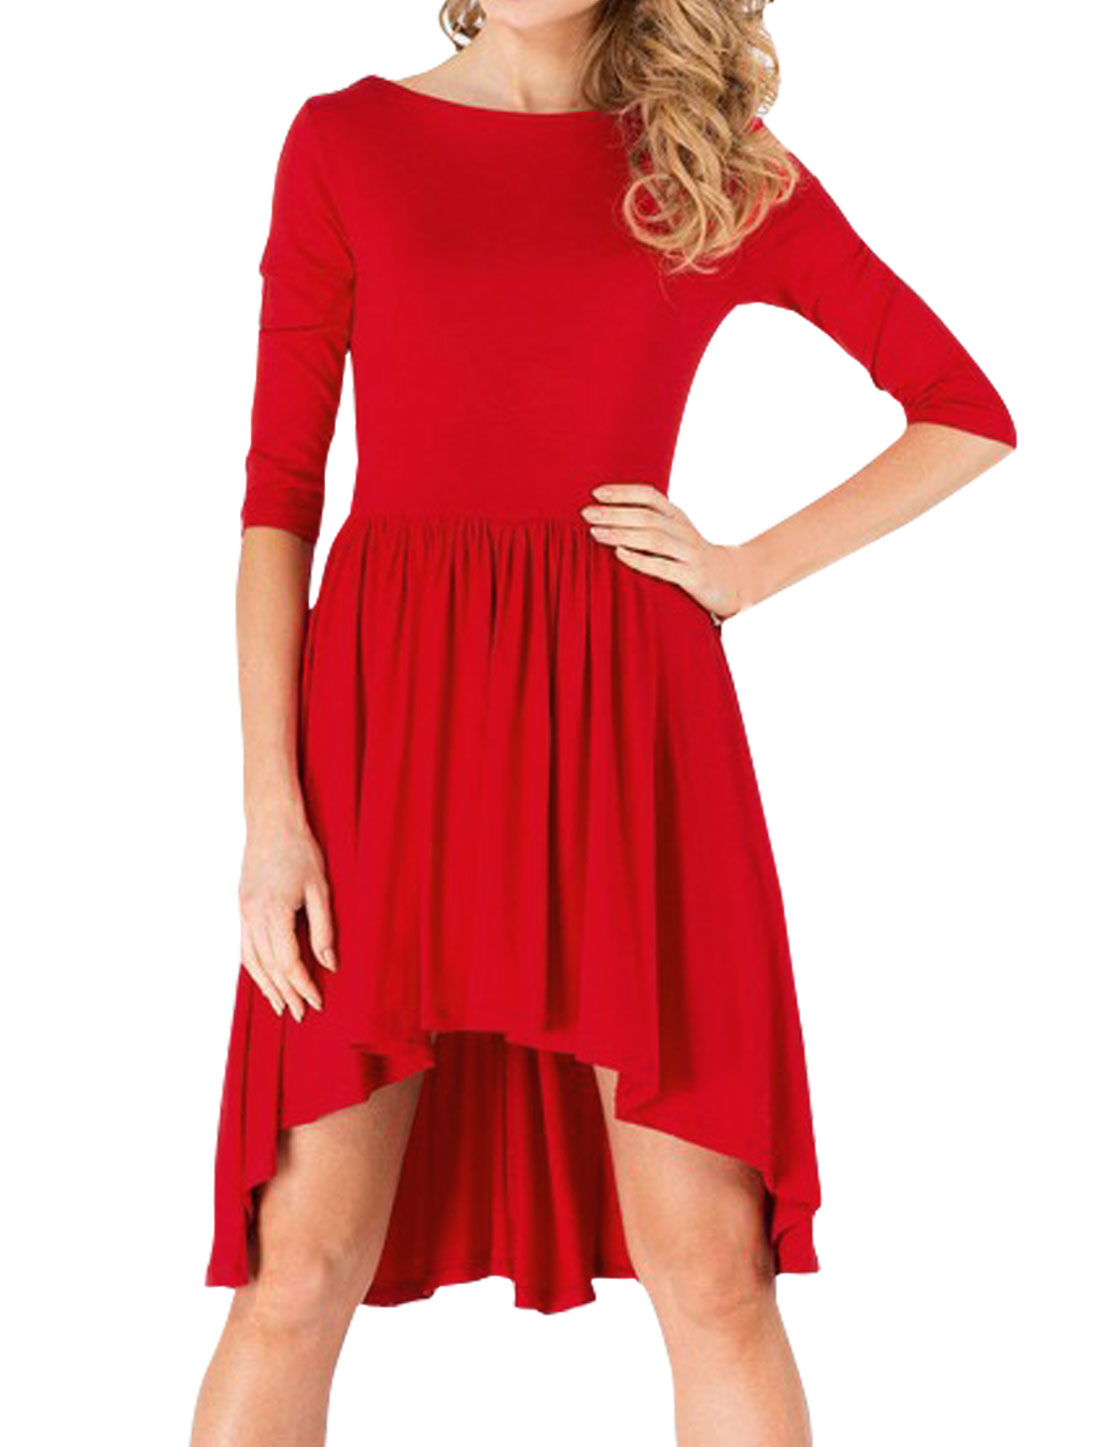 Women 3/4 Sleeves Pleated Asymmetric Hem Tunic Top Red M